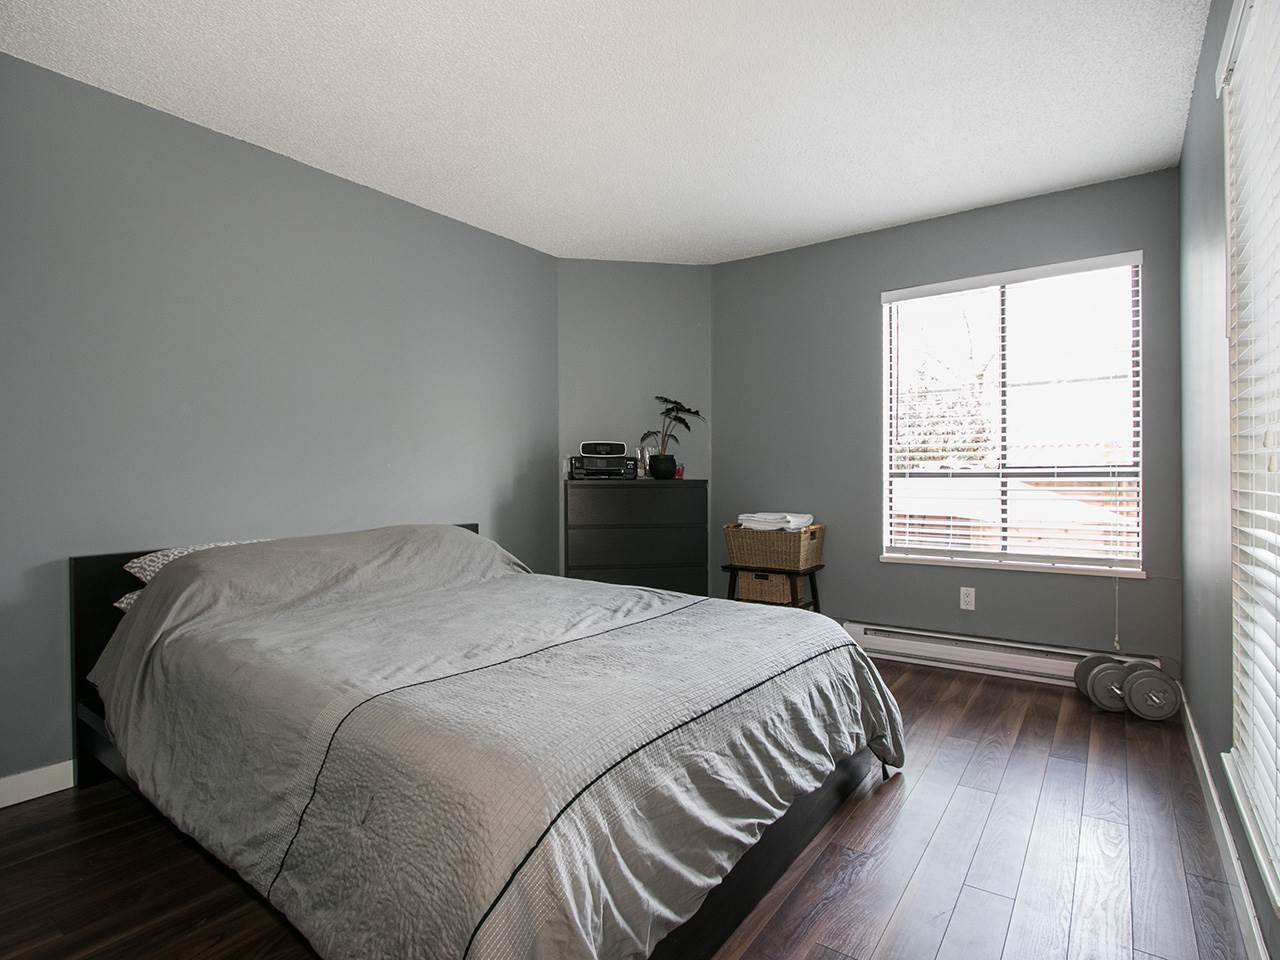 Photo 12: 101 1775 W 10TH AVENUE in Vancouver: Fairview VW Condo for sale (Vancouver West)  : MLS® # R2038742